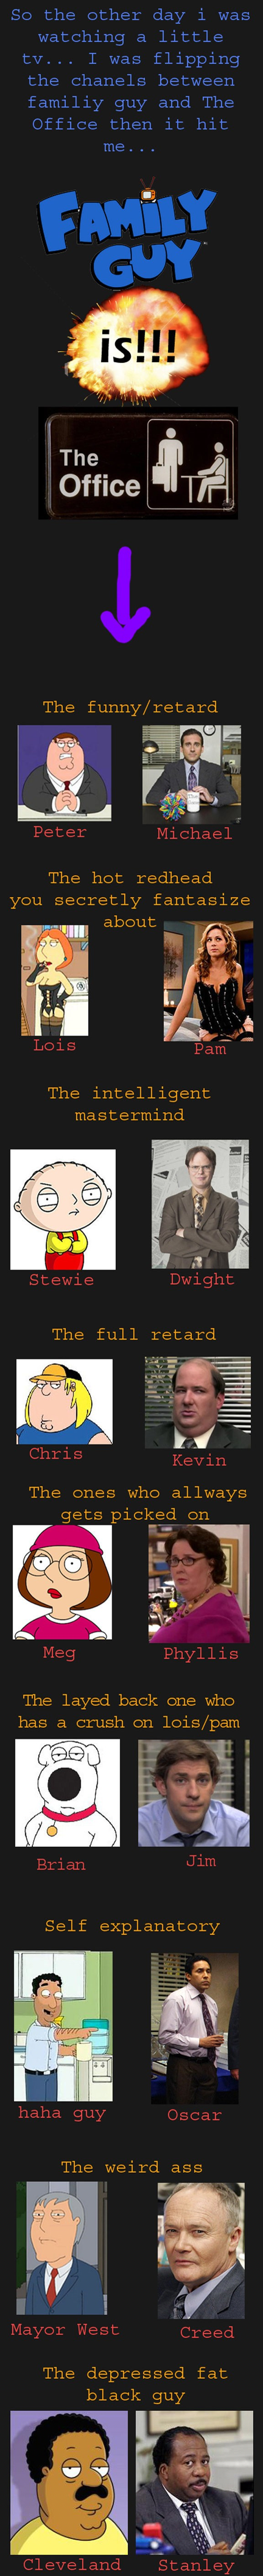 Family Guy - The Office